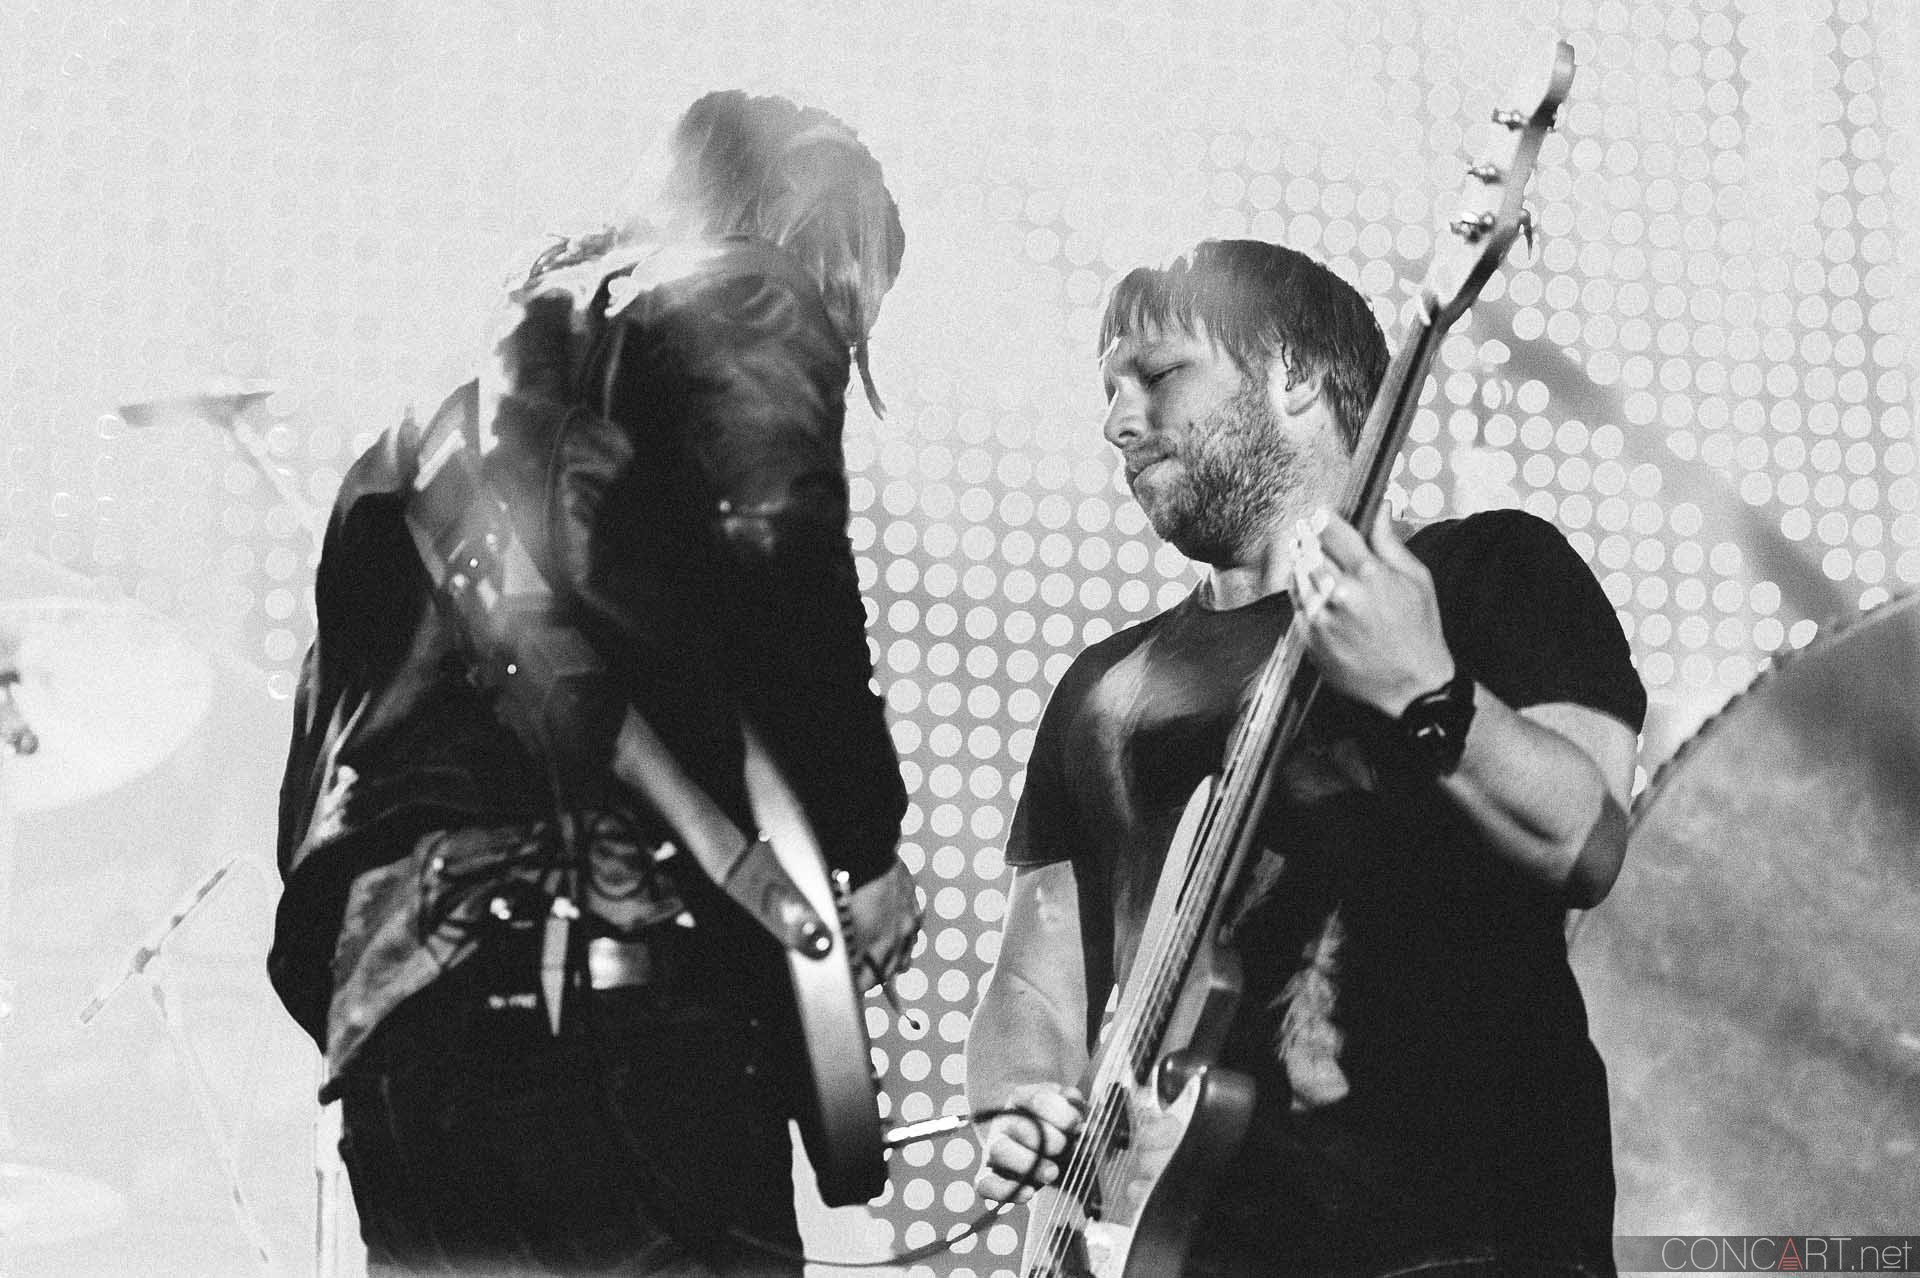 imagine_dragons_live_the_lawn_indianapolis_2013-26